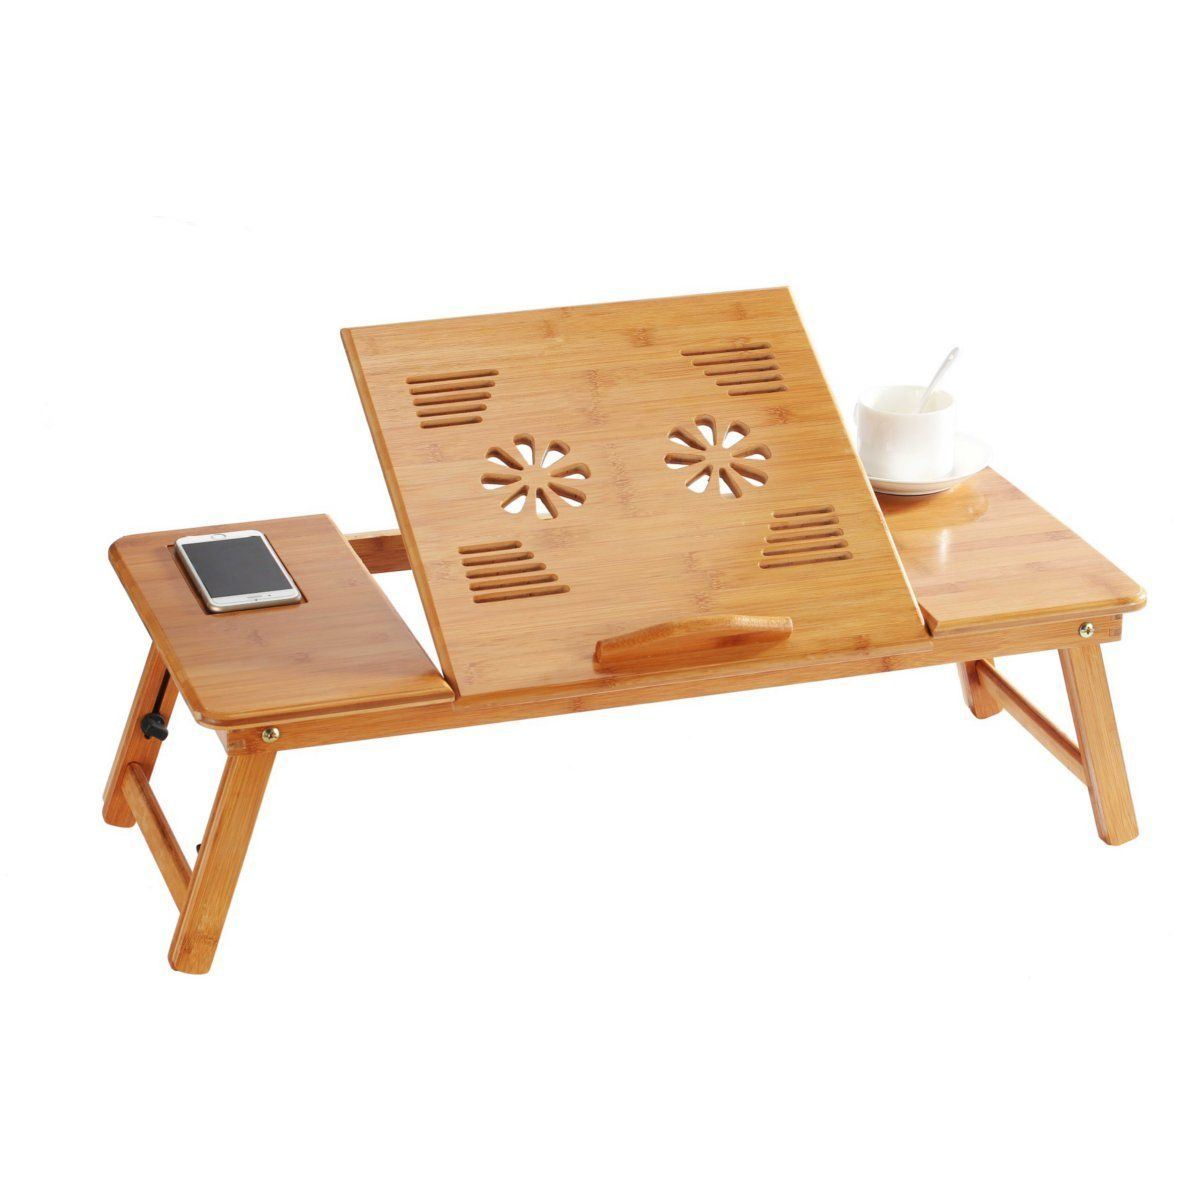 Picture of: 70cm Foldable Folding Lap Desk Bamboo Laptop Bed Table Stand Tray Desk Adjustablebt 2204 China Serving Tray Ventilation Holes Made In China Com